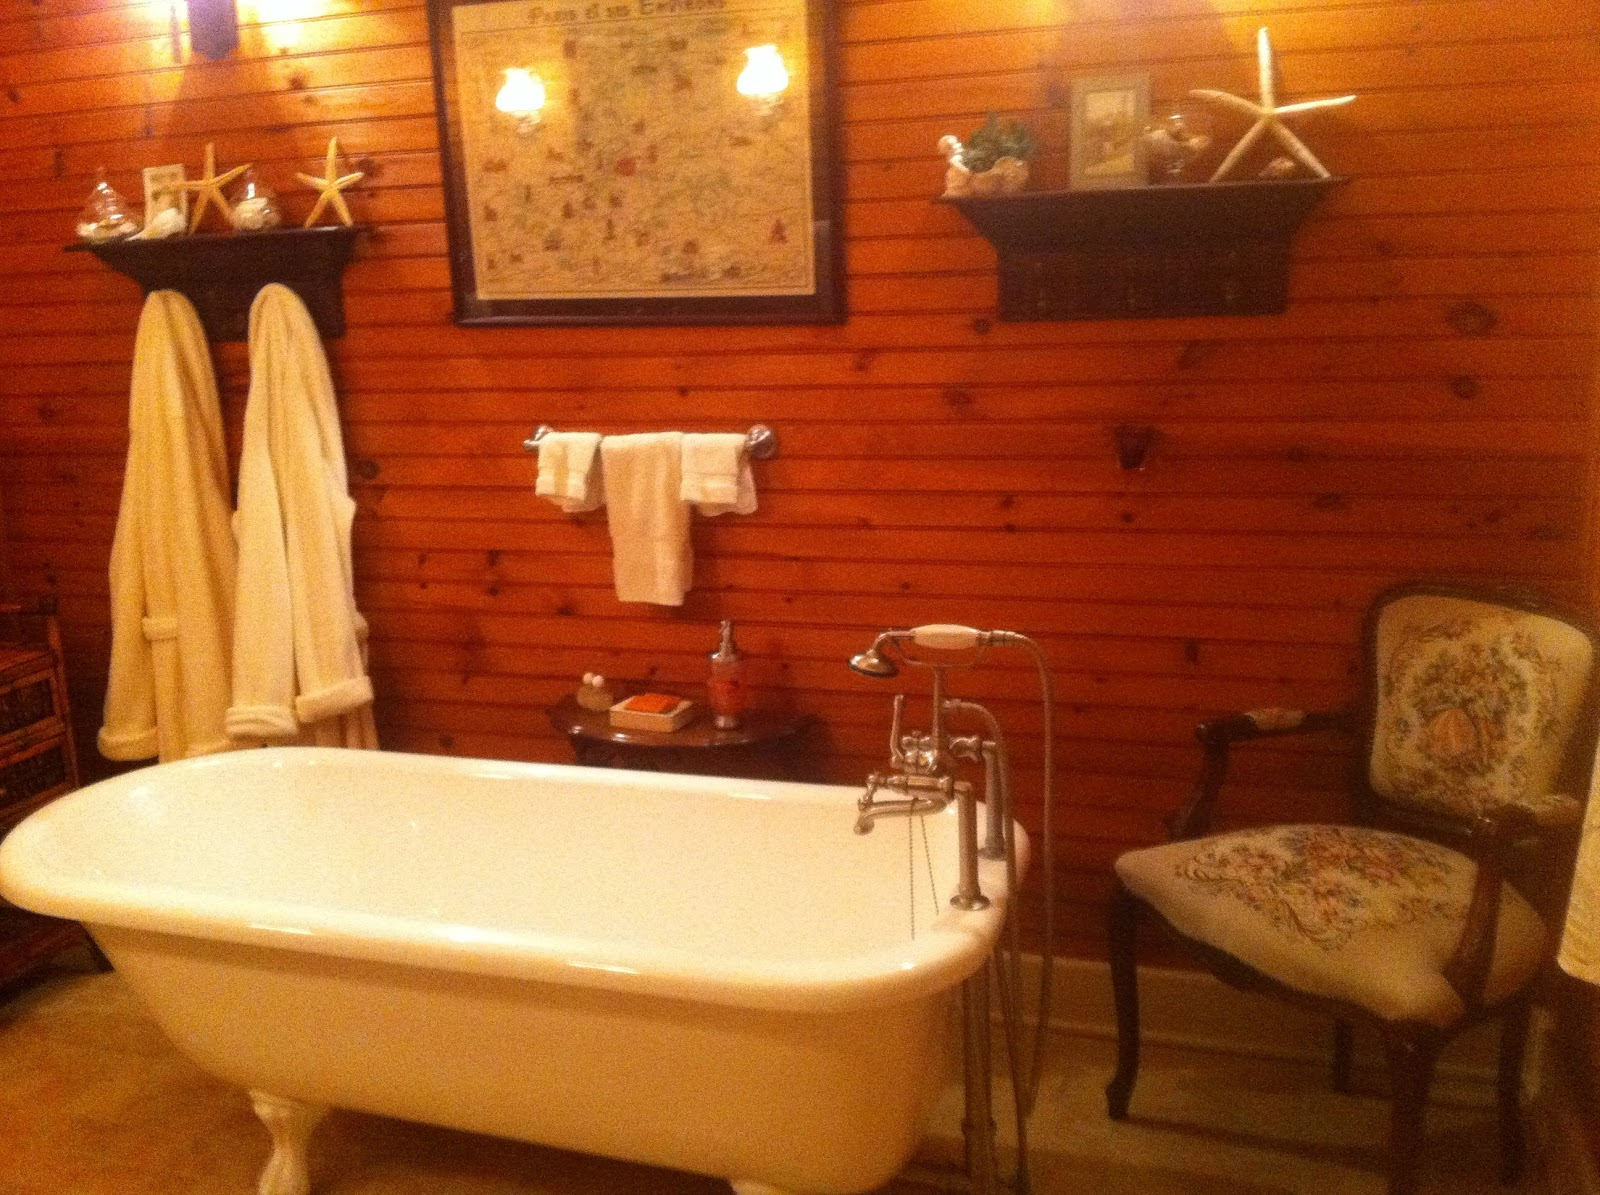 Central_Hotel_Clawfoot_Bathtub.jpg